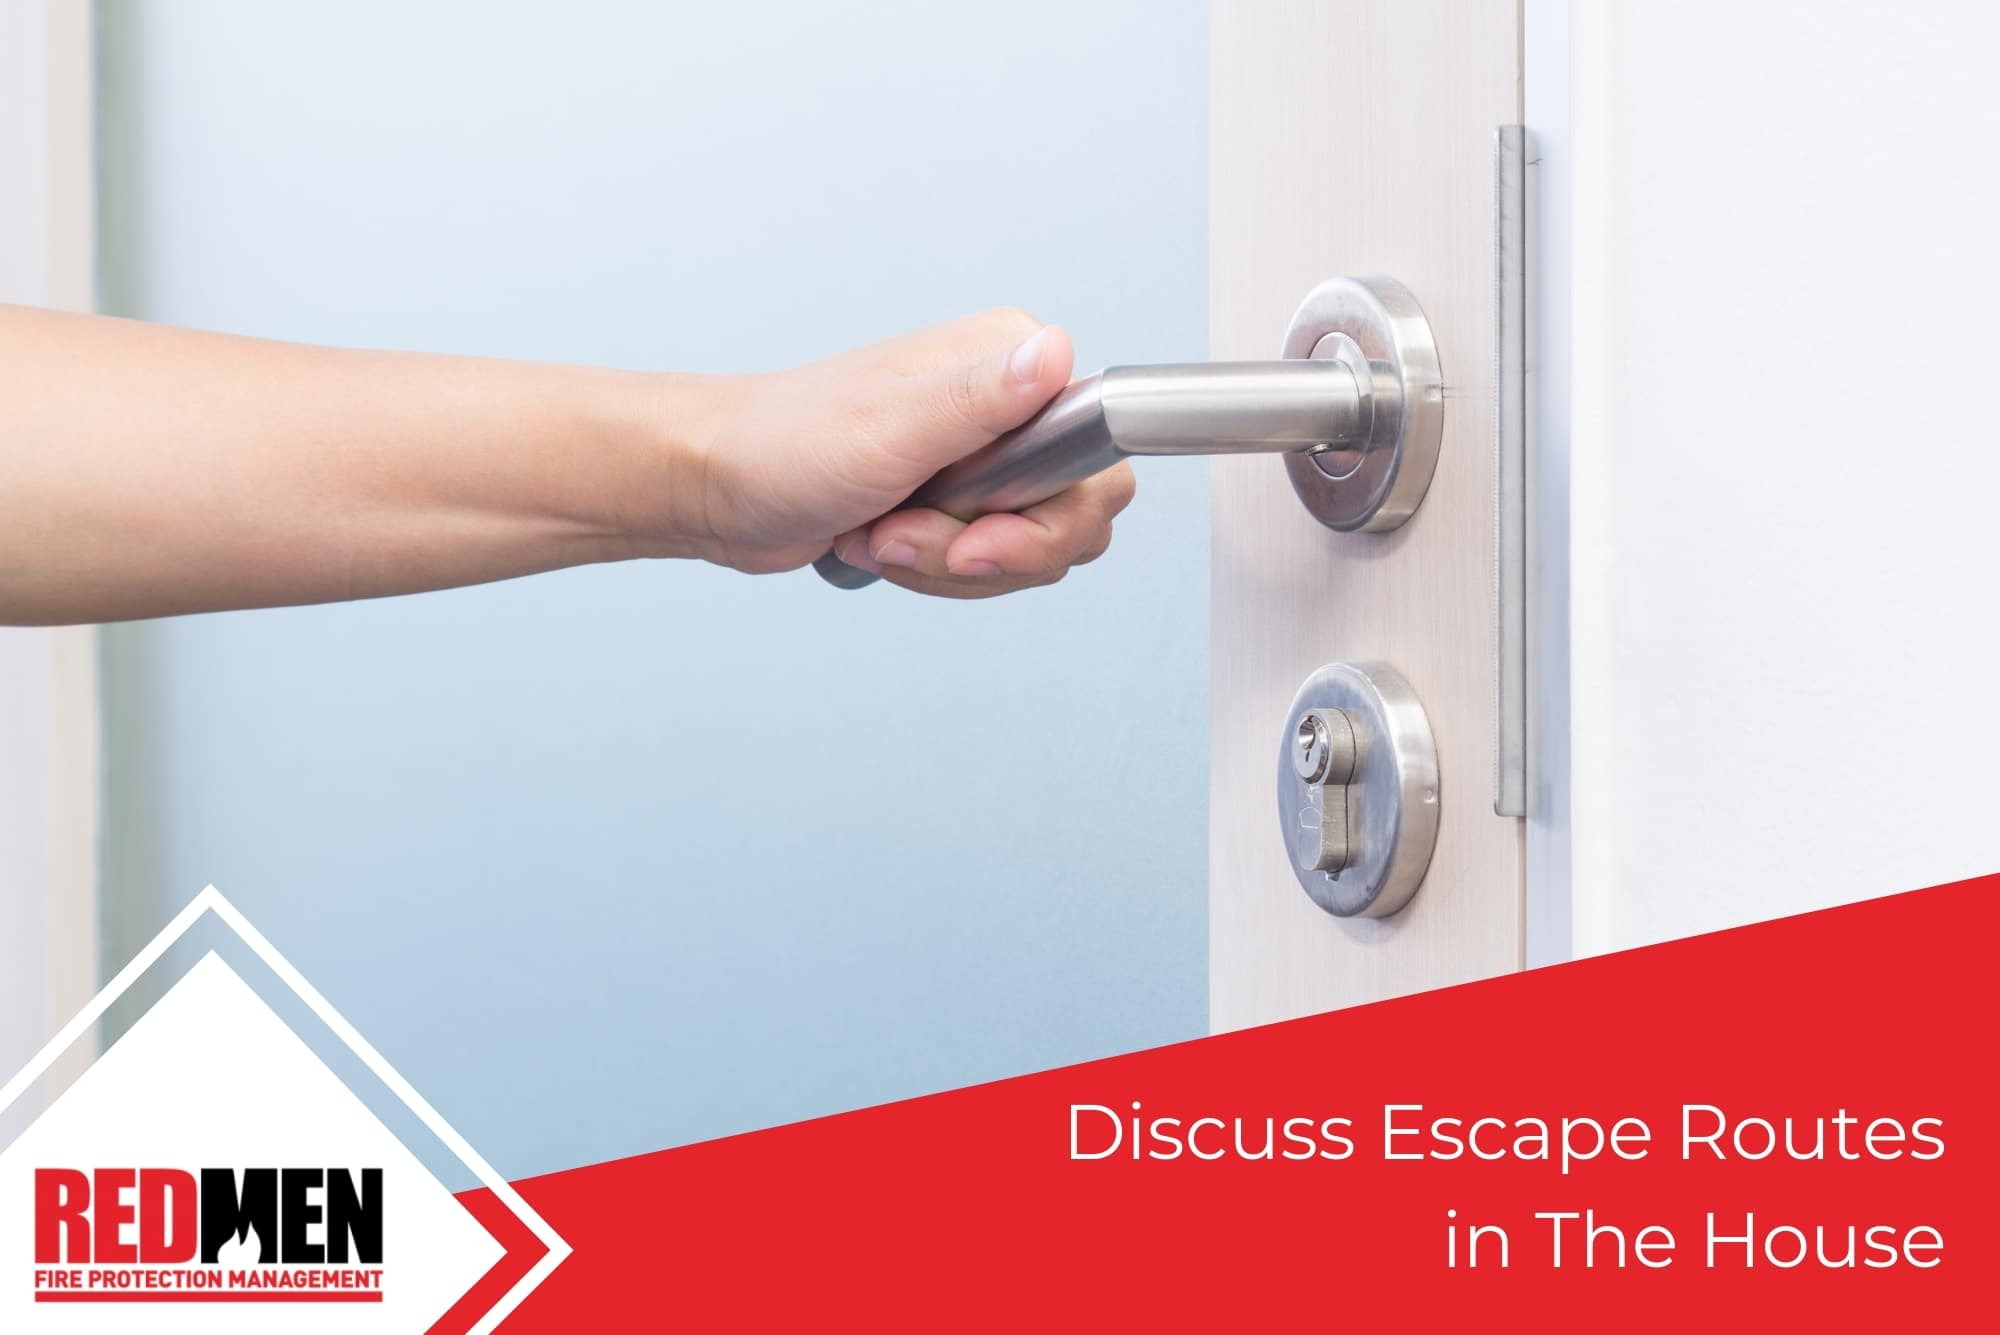 Discuss Escape Routes in The House